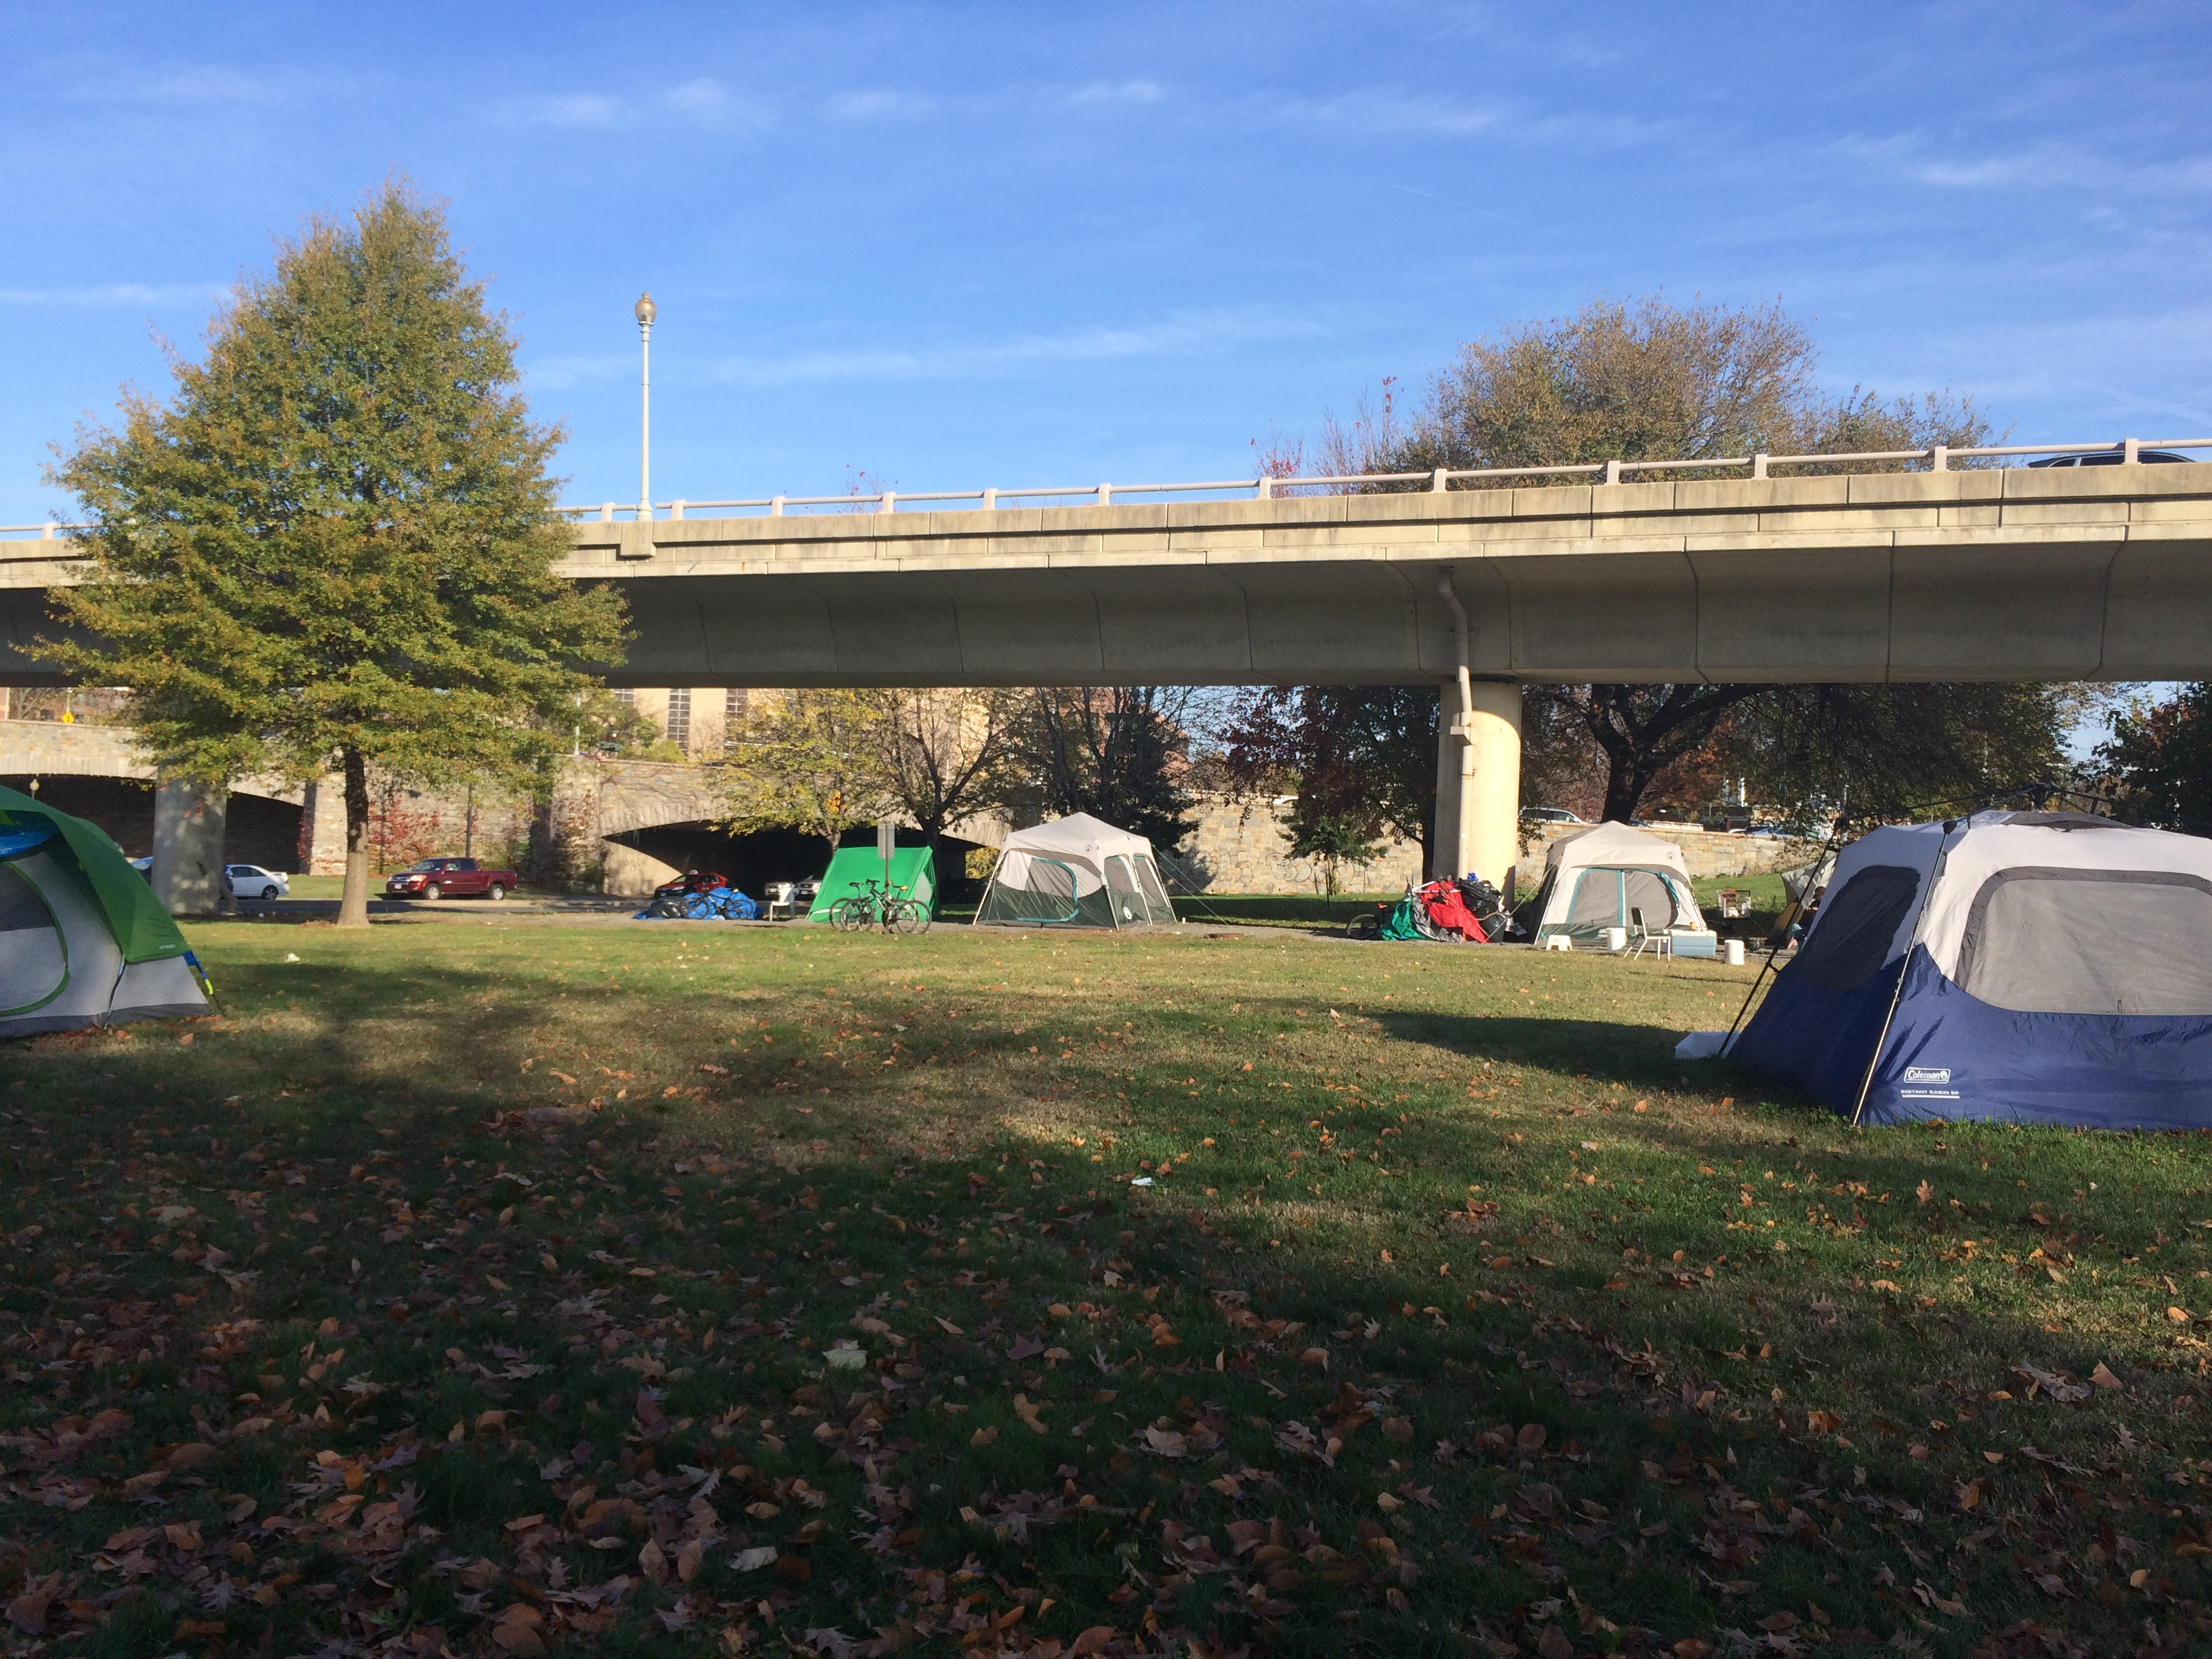 Homeless people say they are staying at D.C. encampment